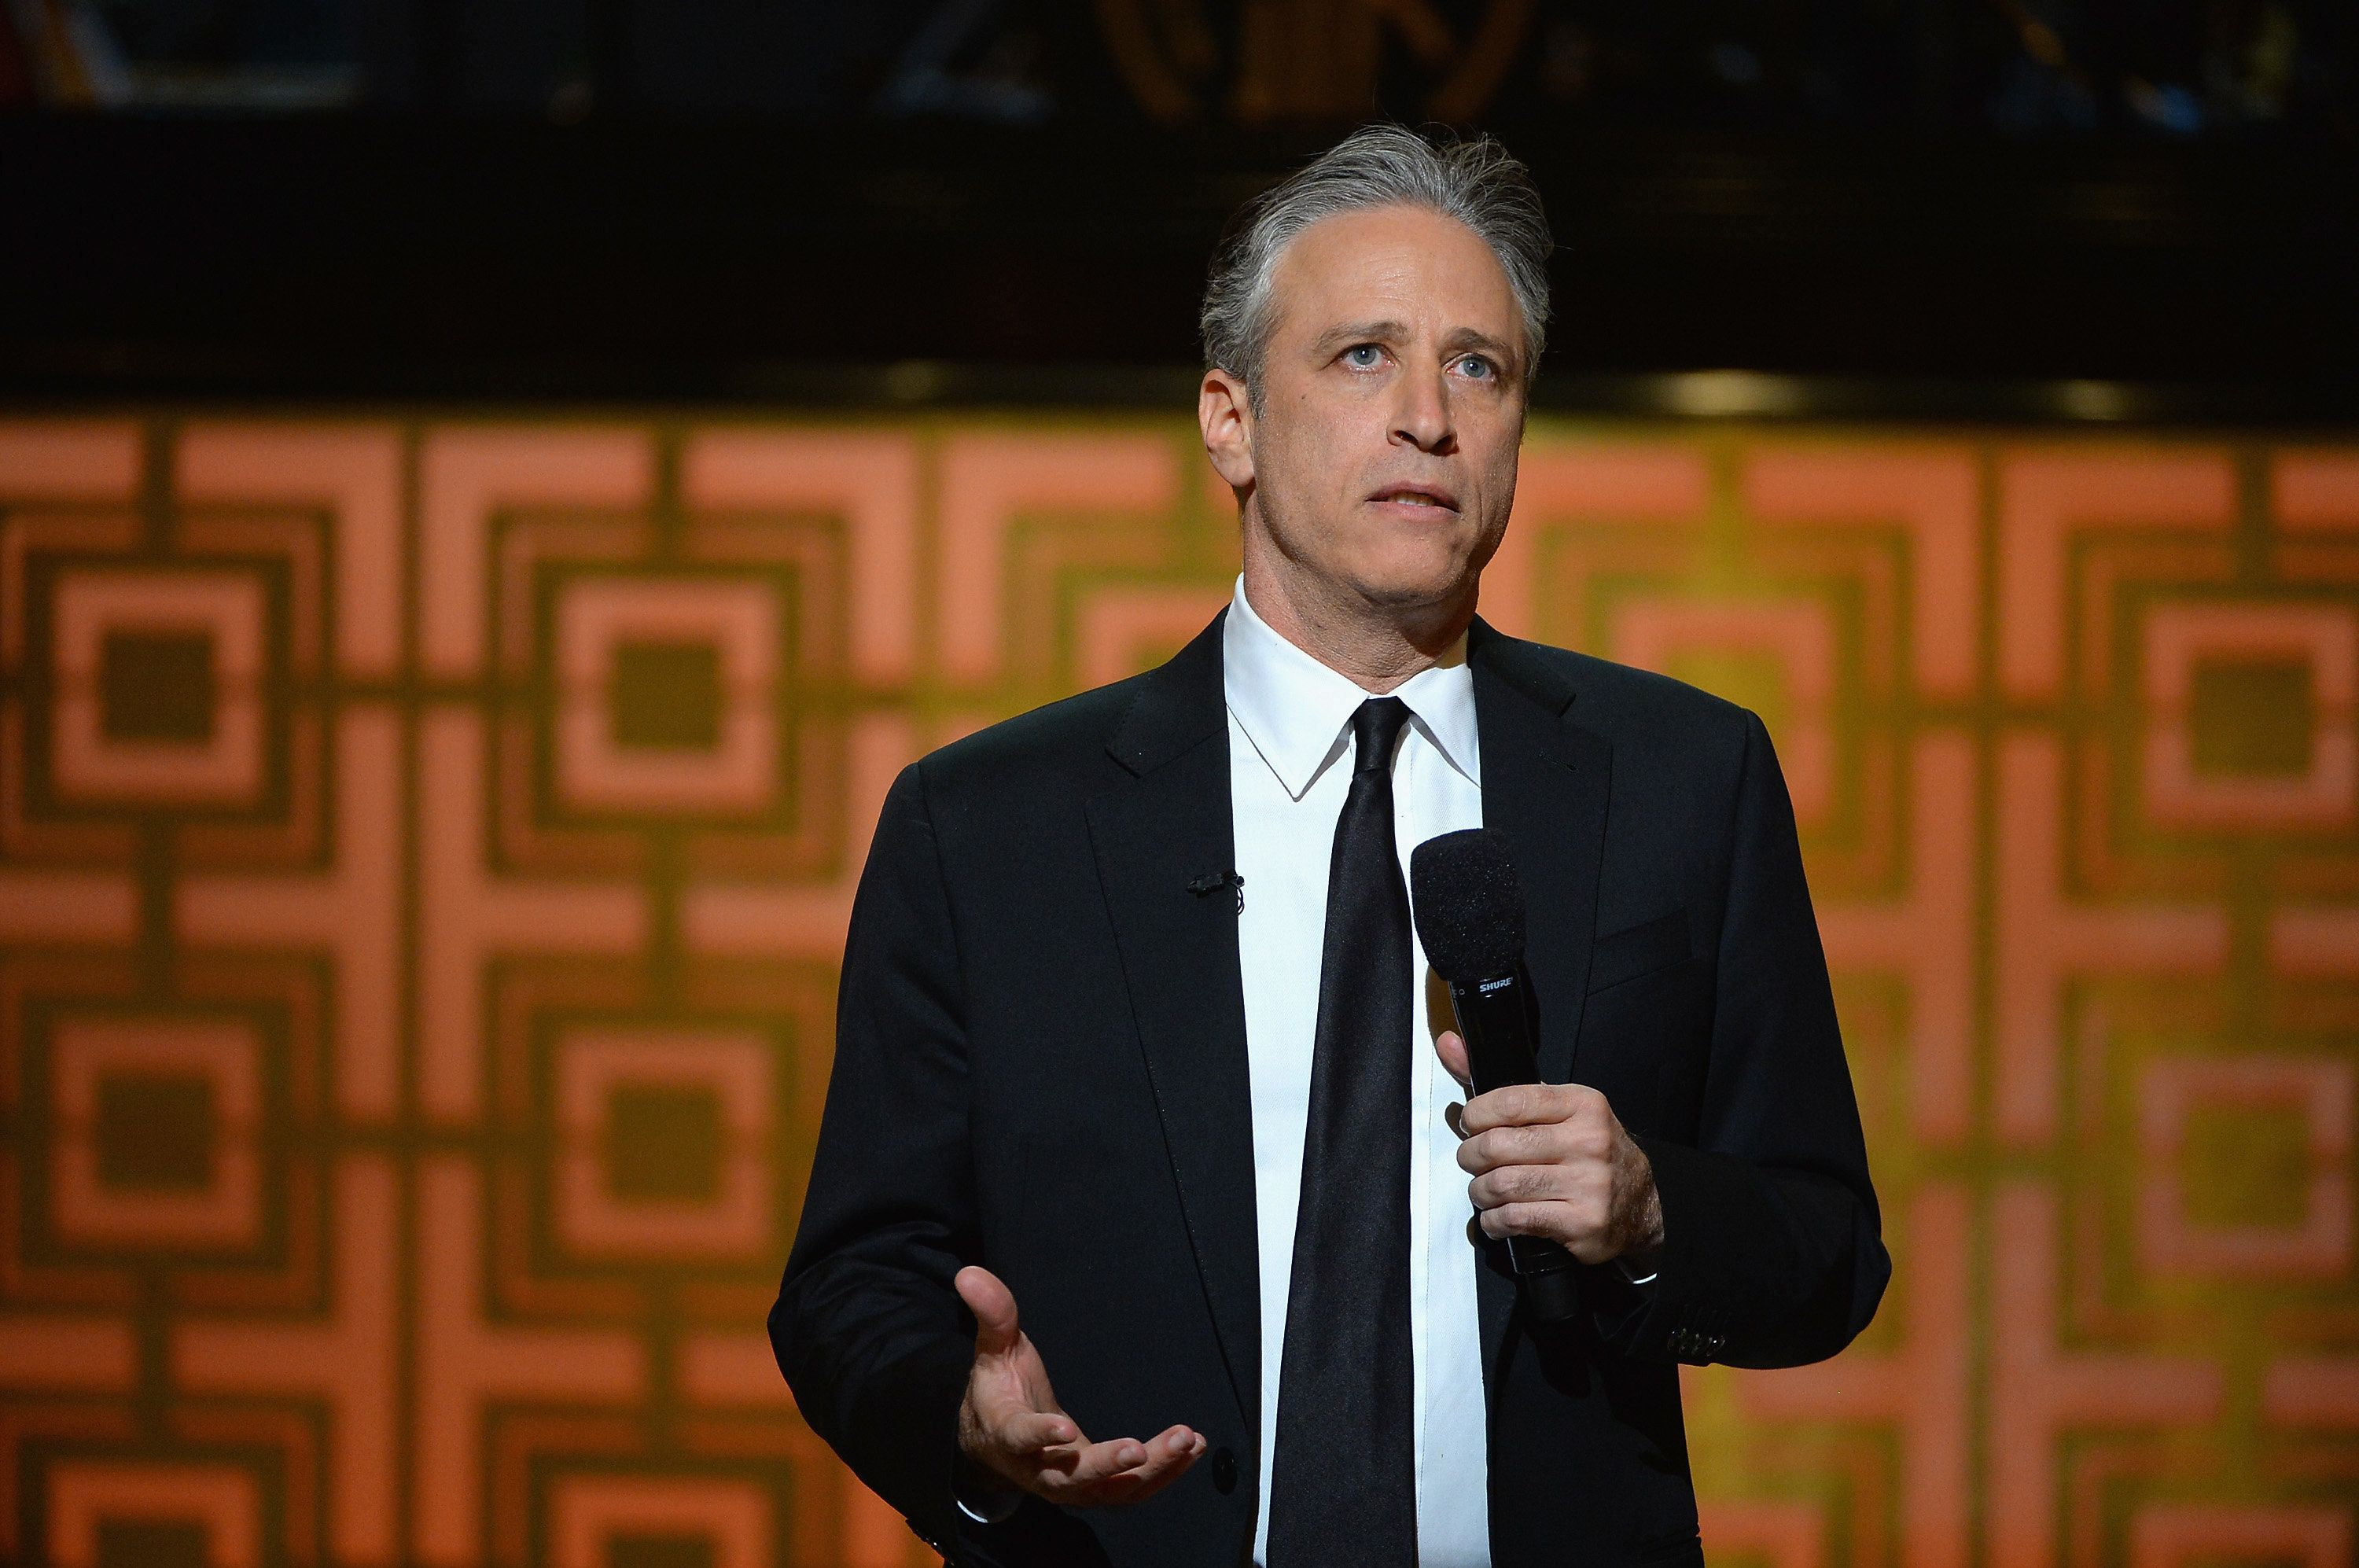 NEW YORK, NY - MAY 06:  Jon Stewart speaks onstage at Spike TV's 'Don Rickles: One Night Only' on May 6, 2014 in New York City.  (Photo by Theo Wargo/Getty Images for Spike TV)